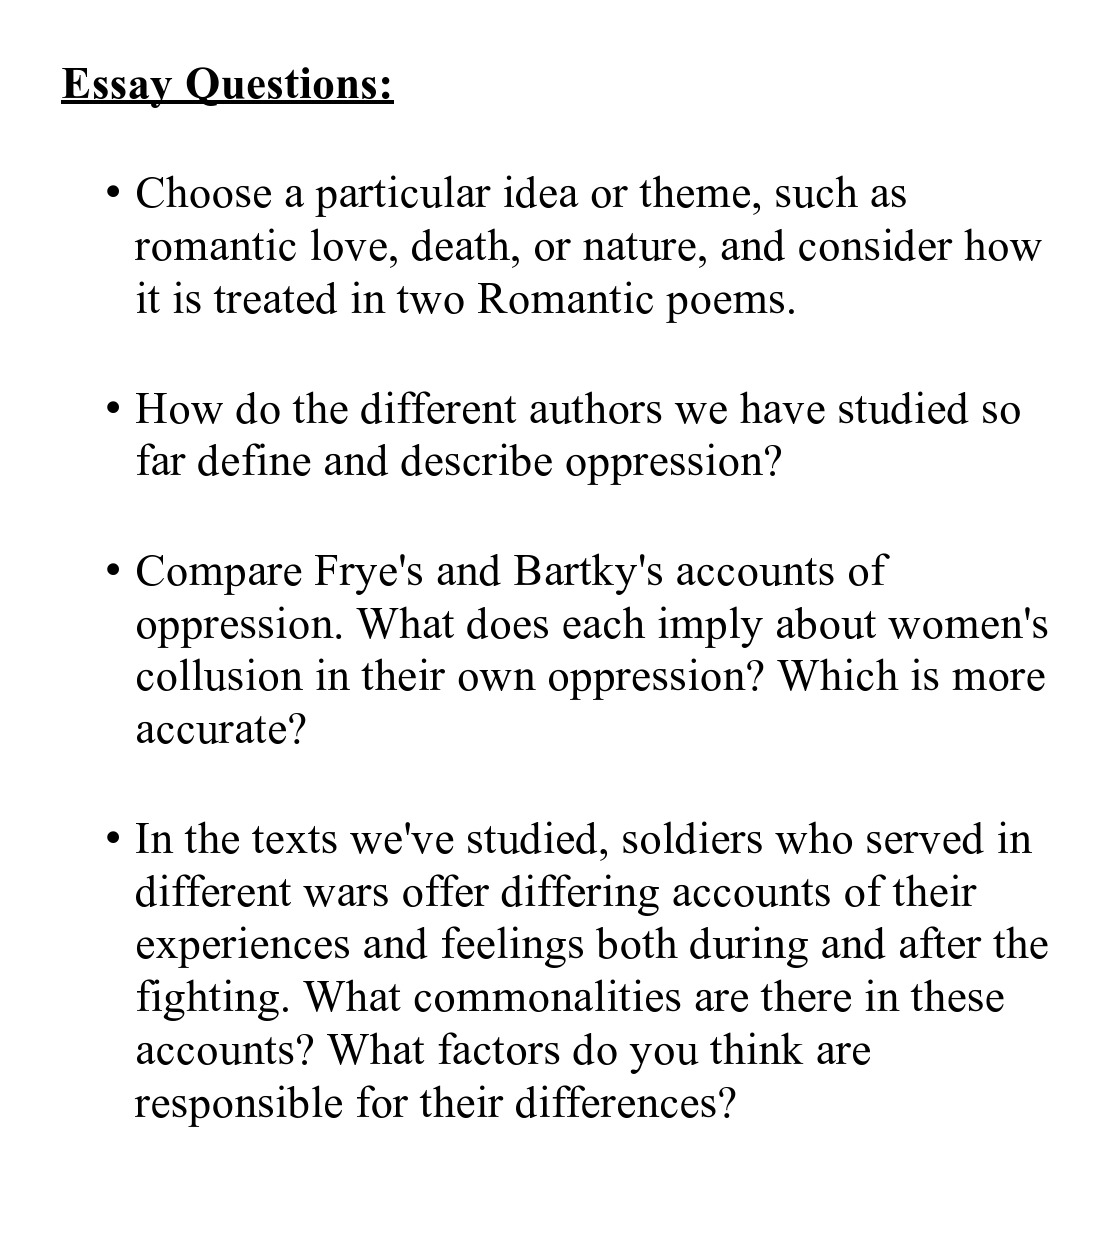 010 Essay Questions Example Awful Practice On Makes A Man Perfect In Hindi Topics High School Khan Academy Sat Full